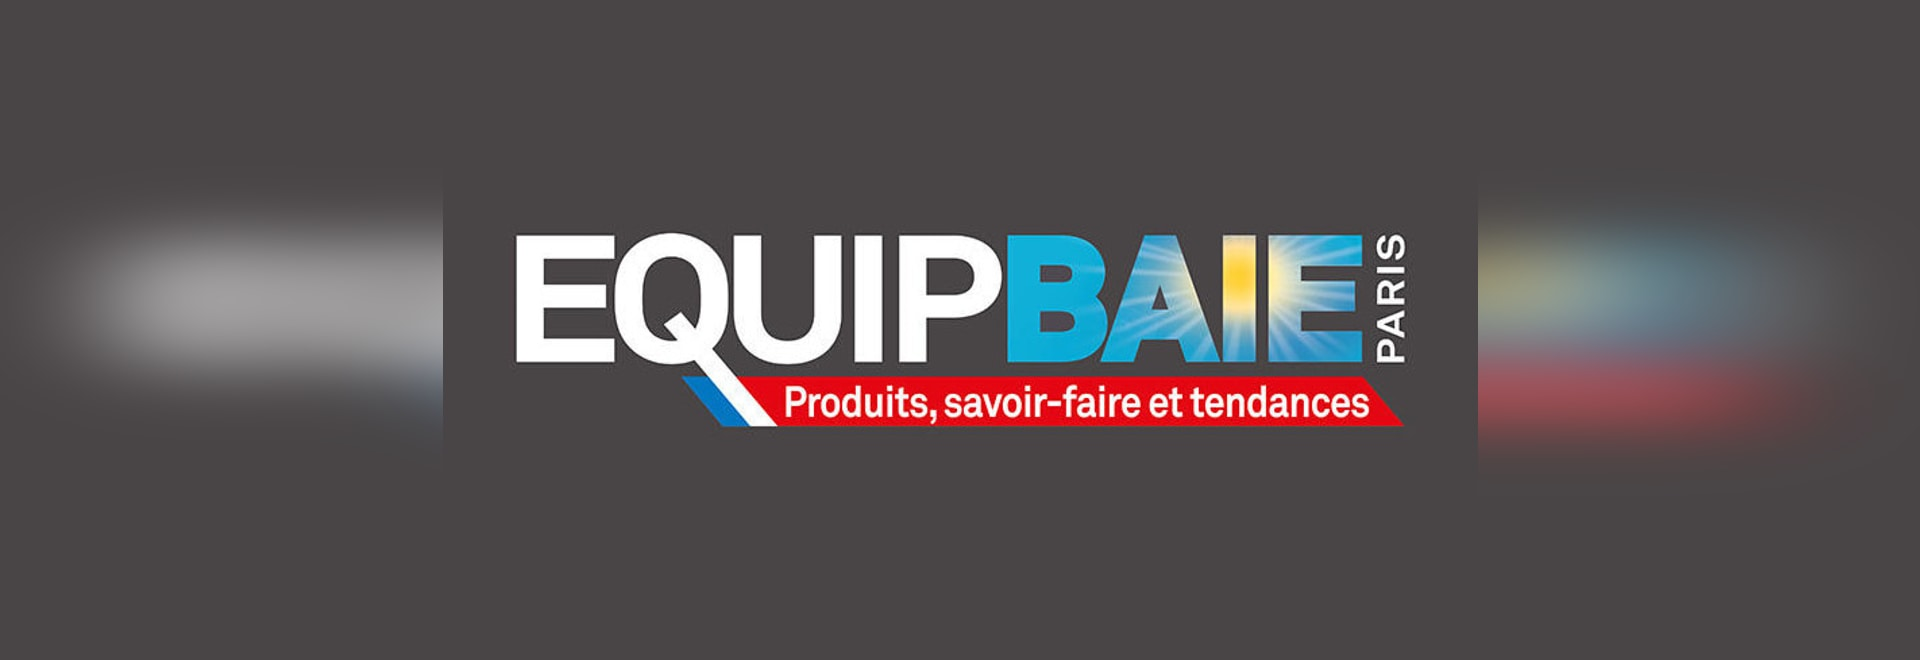 AV Composites' presence at EquipBaie Fair